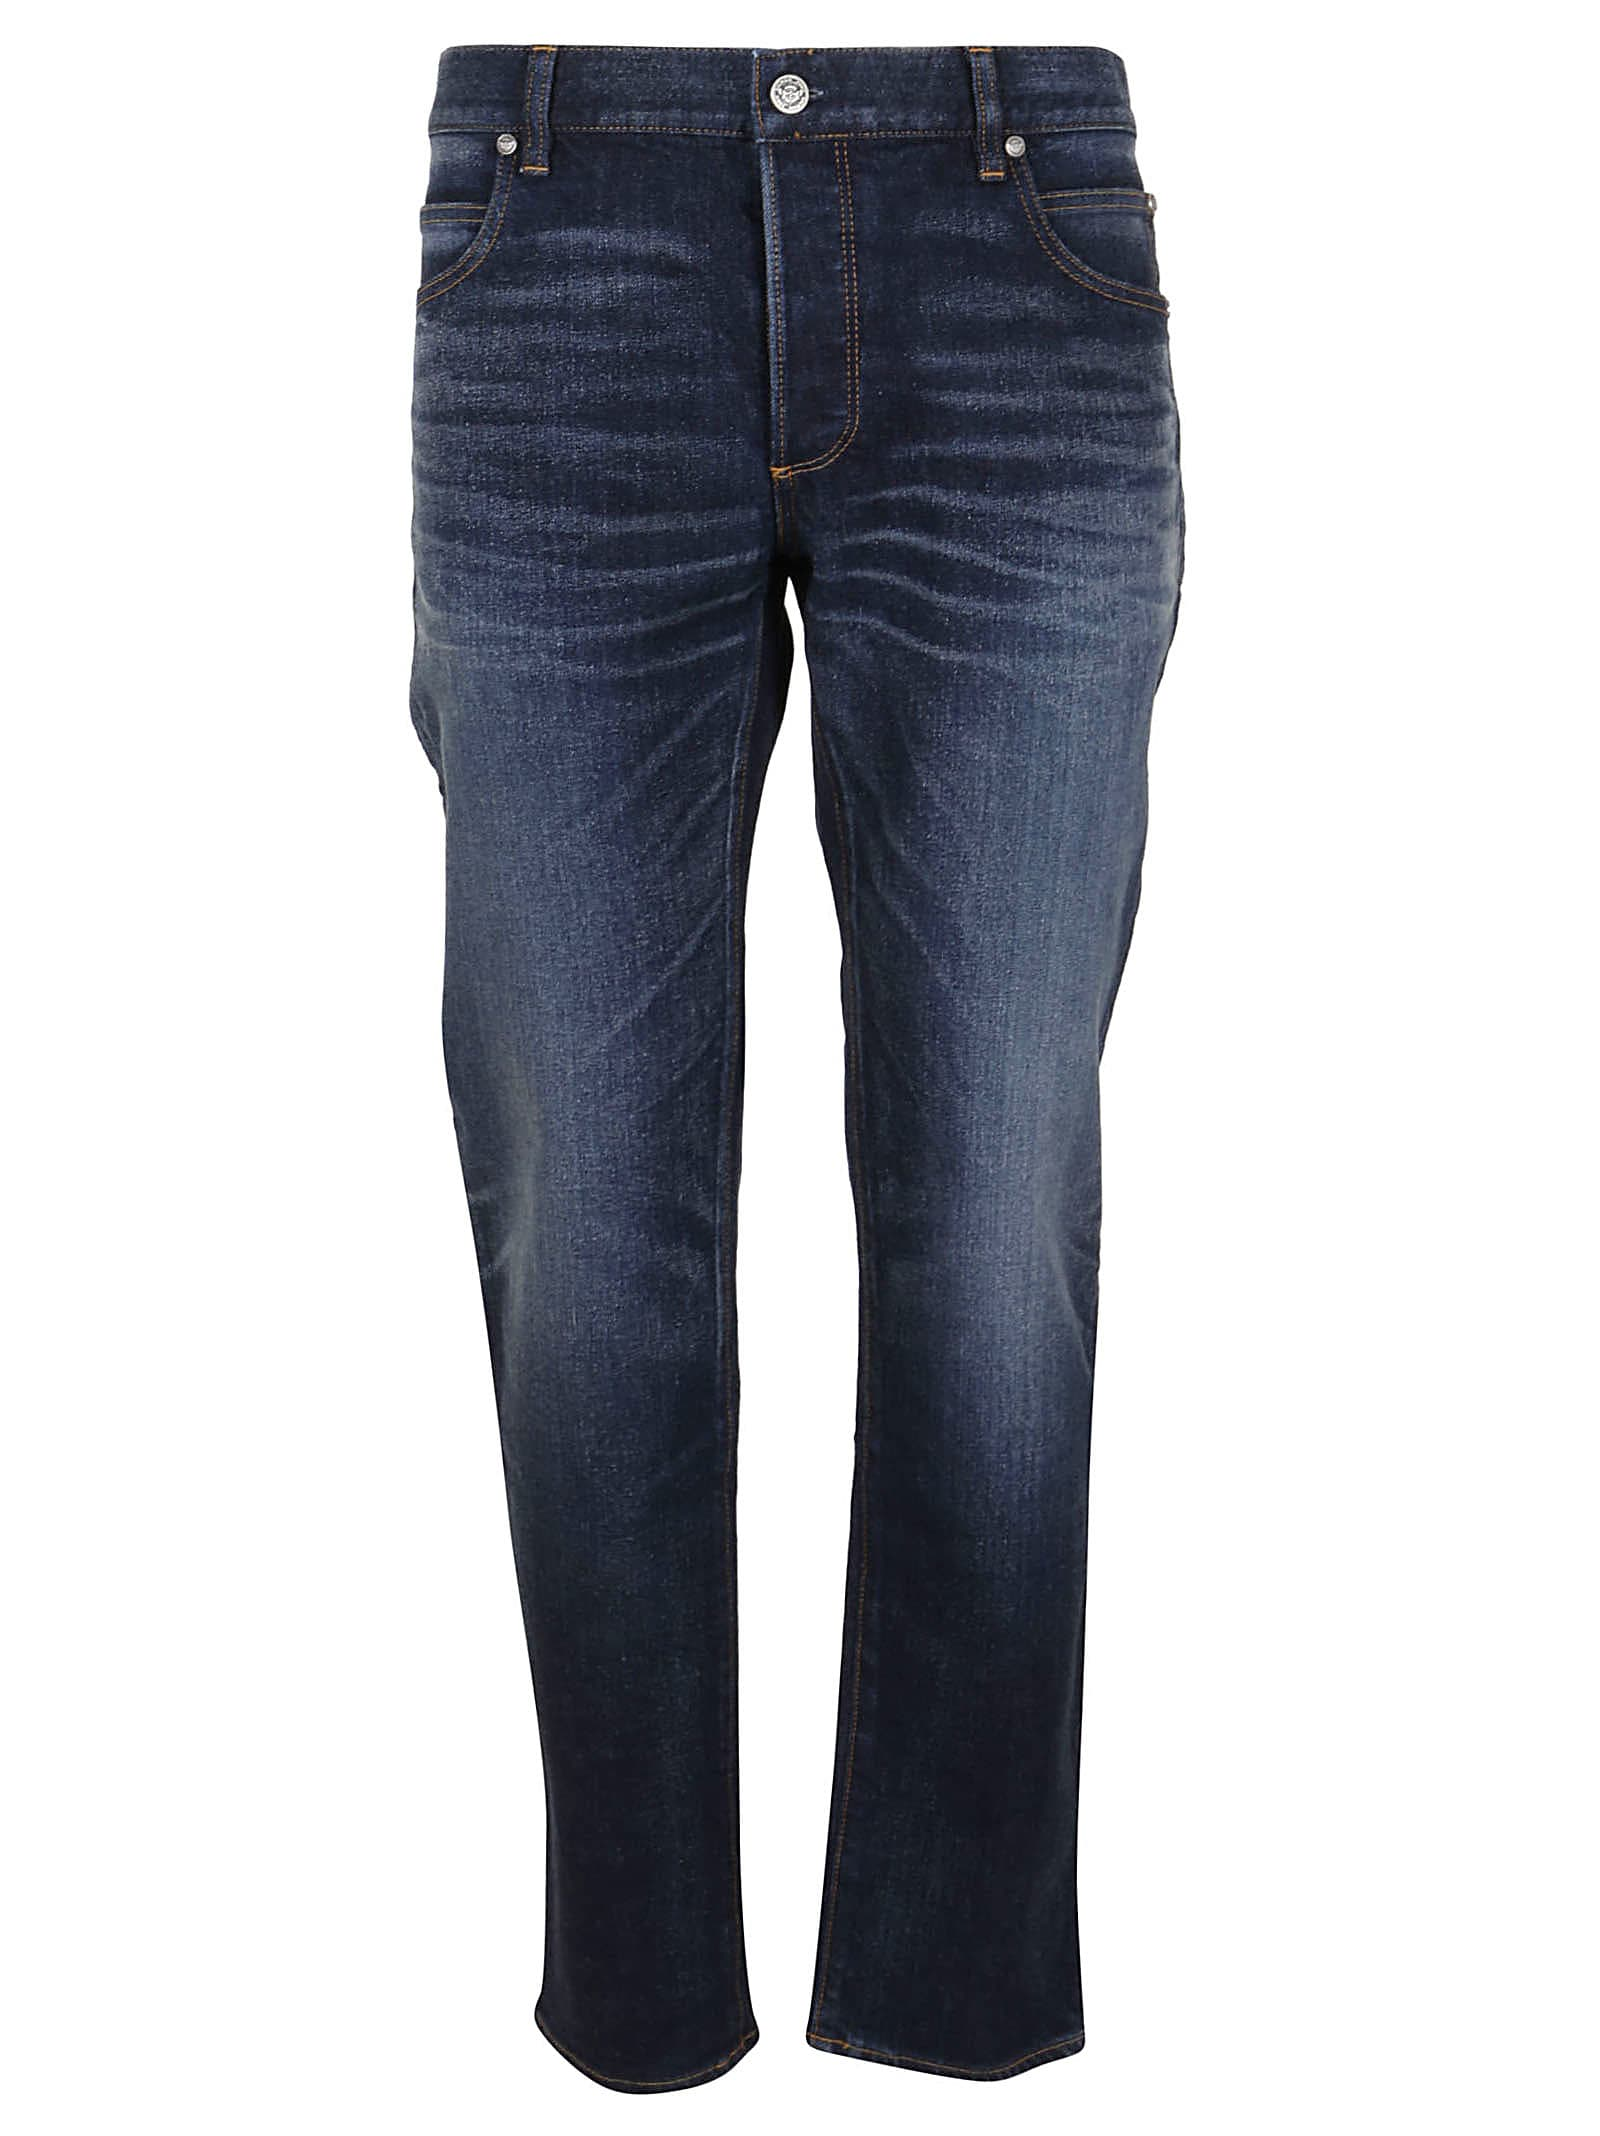 Balmain B EMBROIDERED TAPERED JEANS-RAW VINTAGE